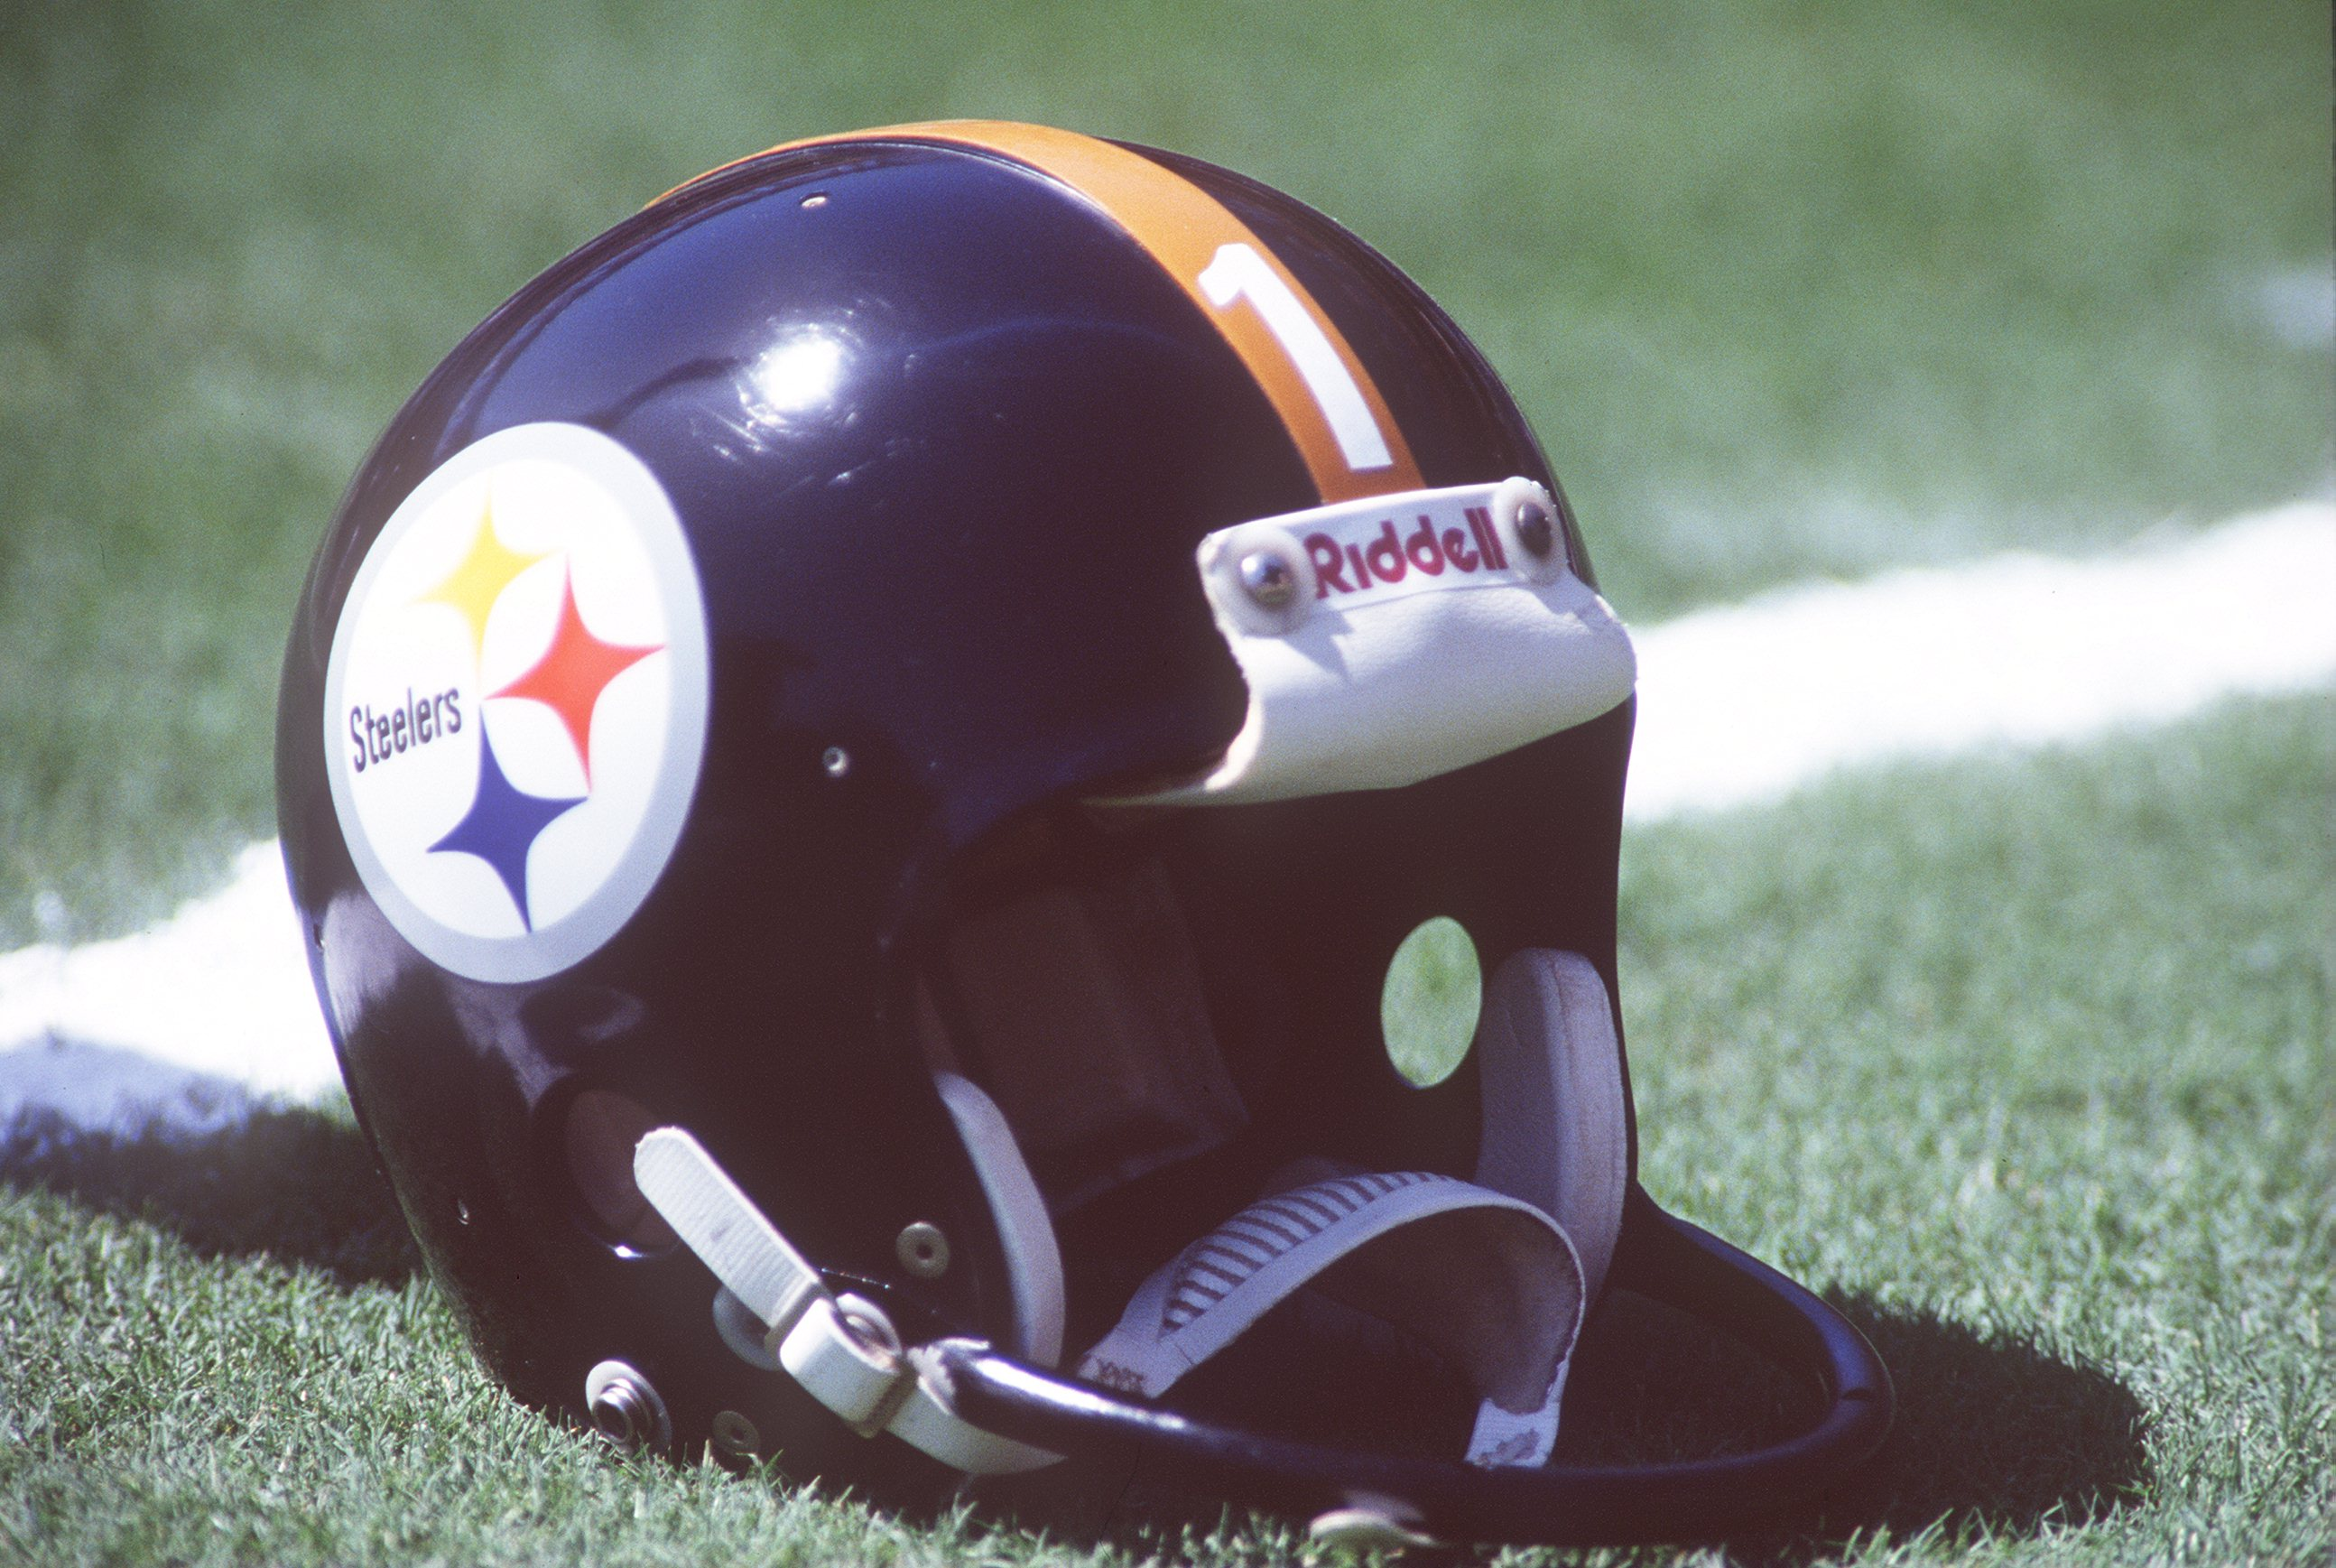 291031-steelers-helmet.jpg